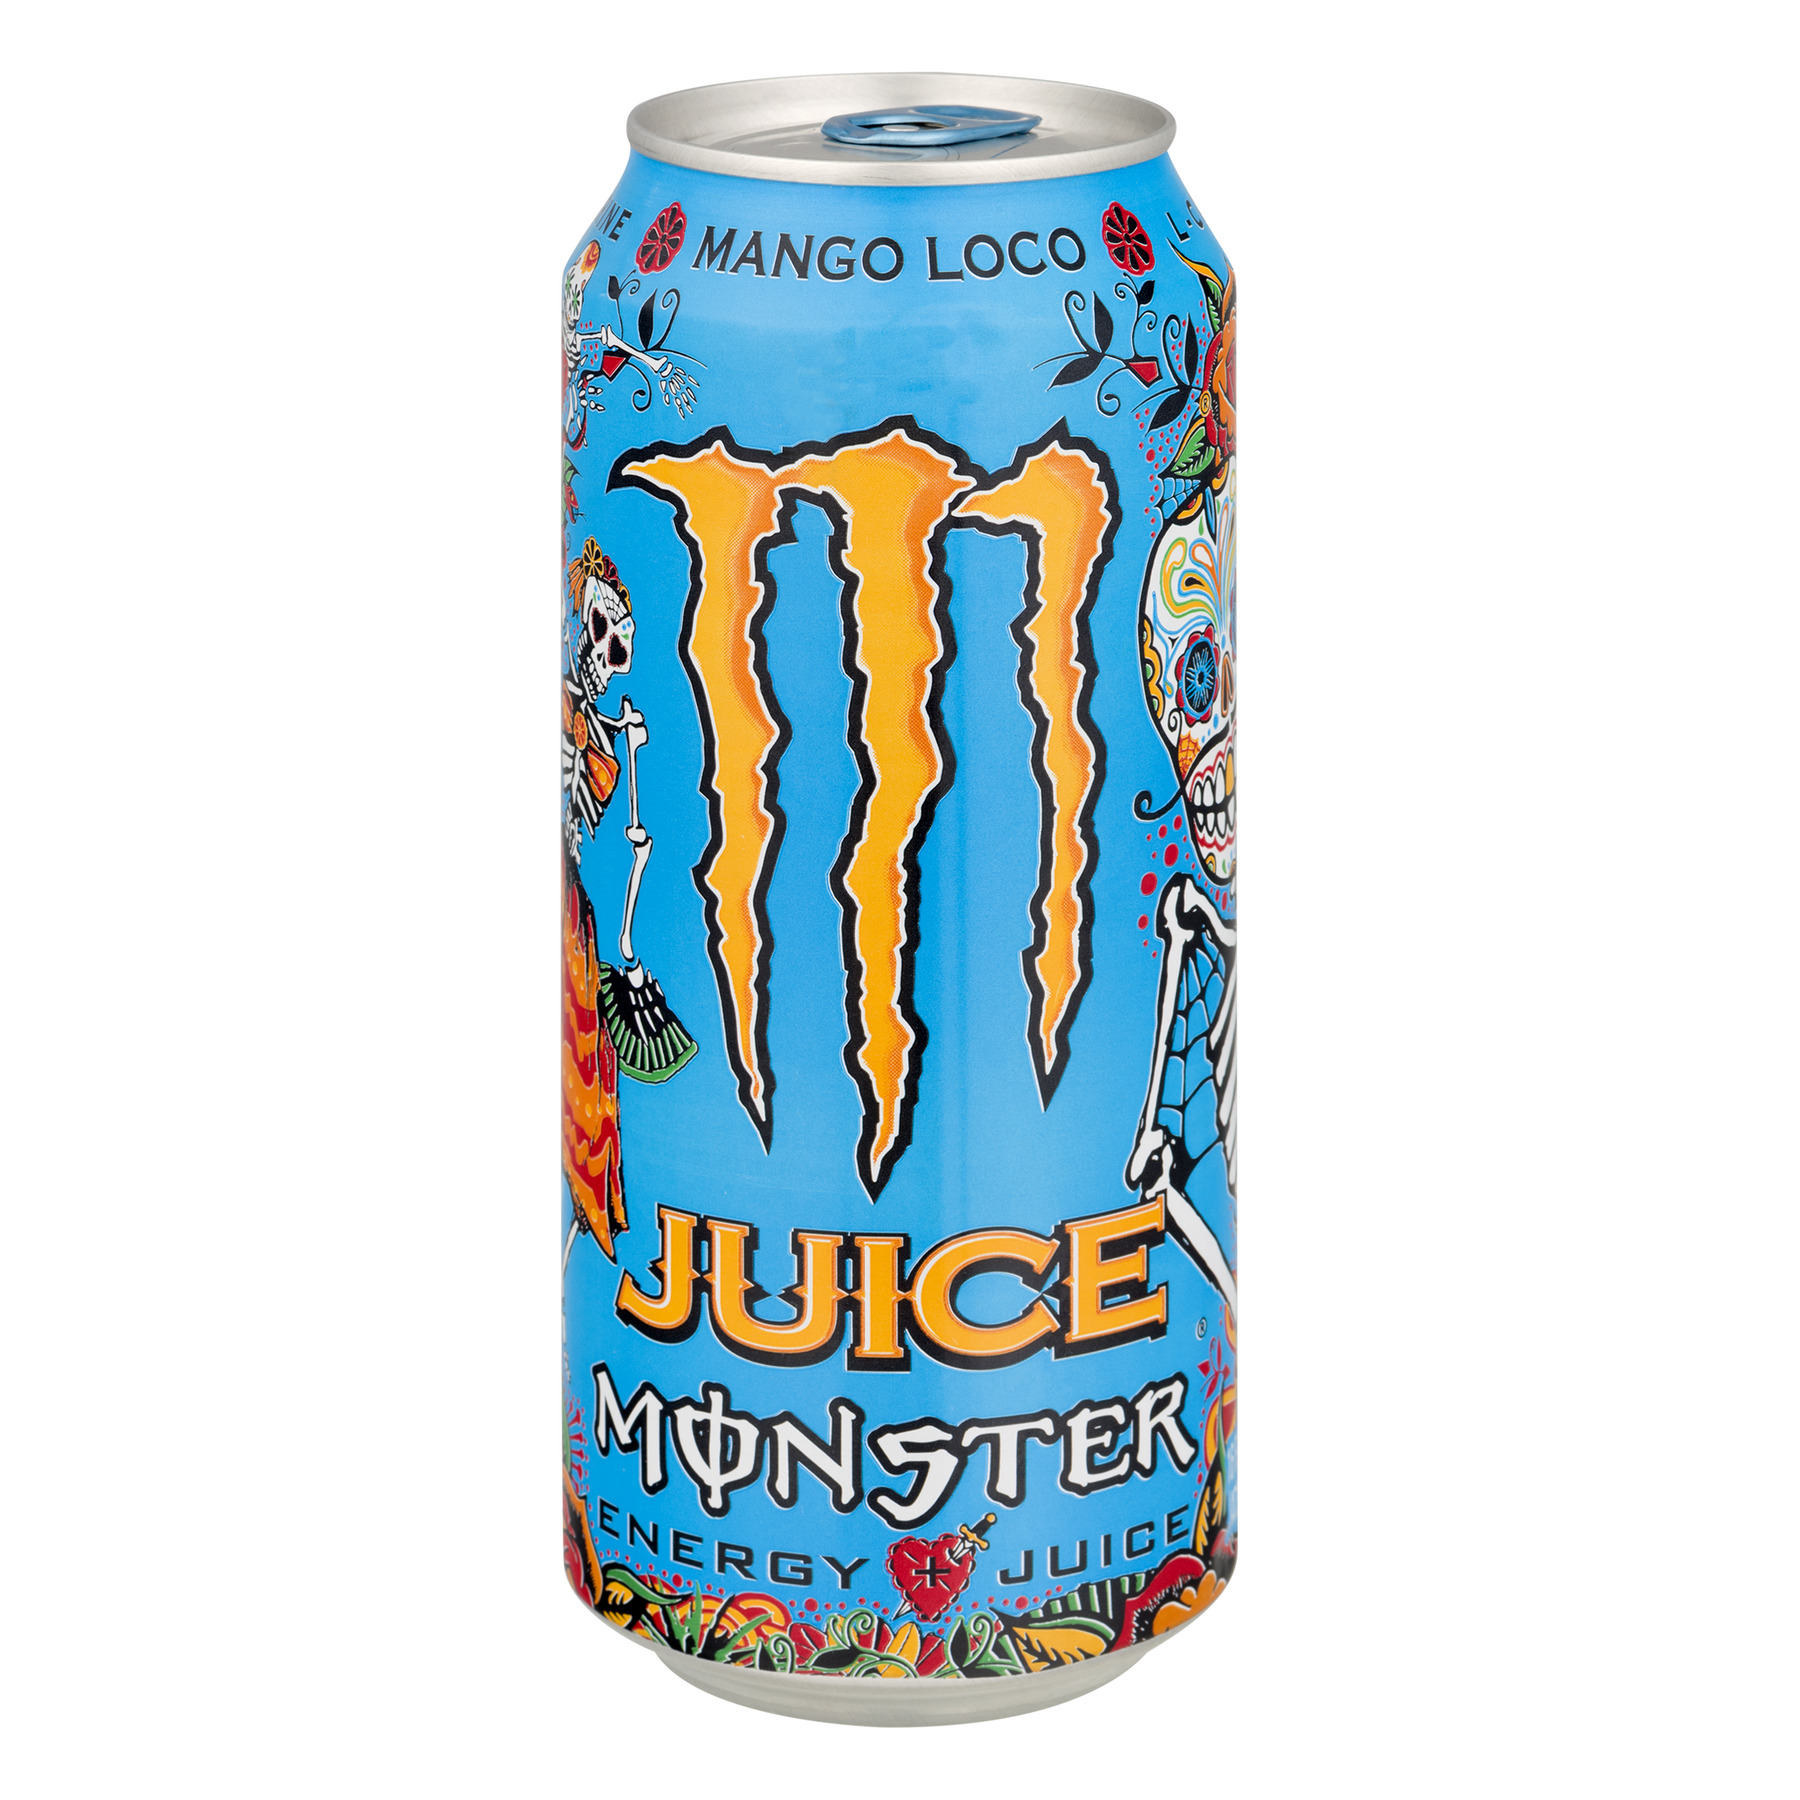 Admirable Monster Mango Loco Energy Juice 16 Fl Oz Walmart Com Ocoug Best Dining Table And Chair Ideas Images Ocougorg